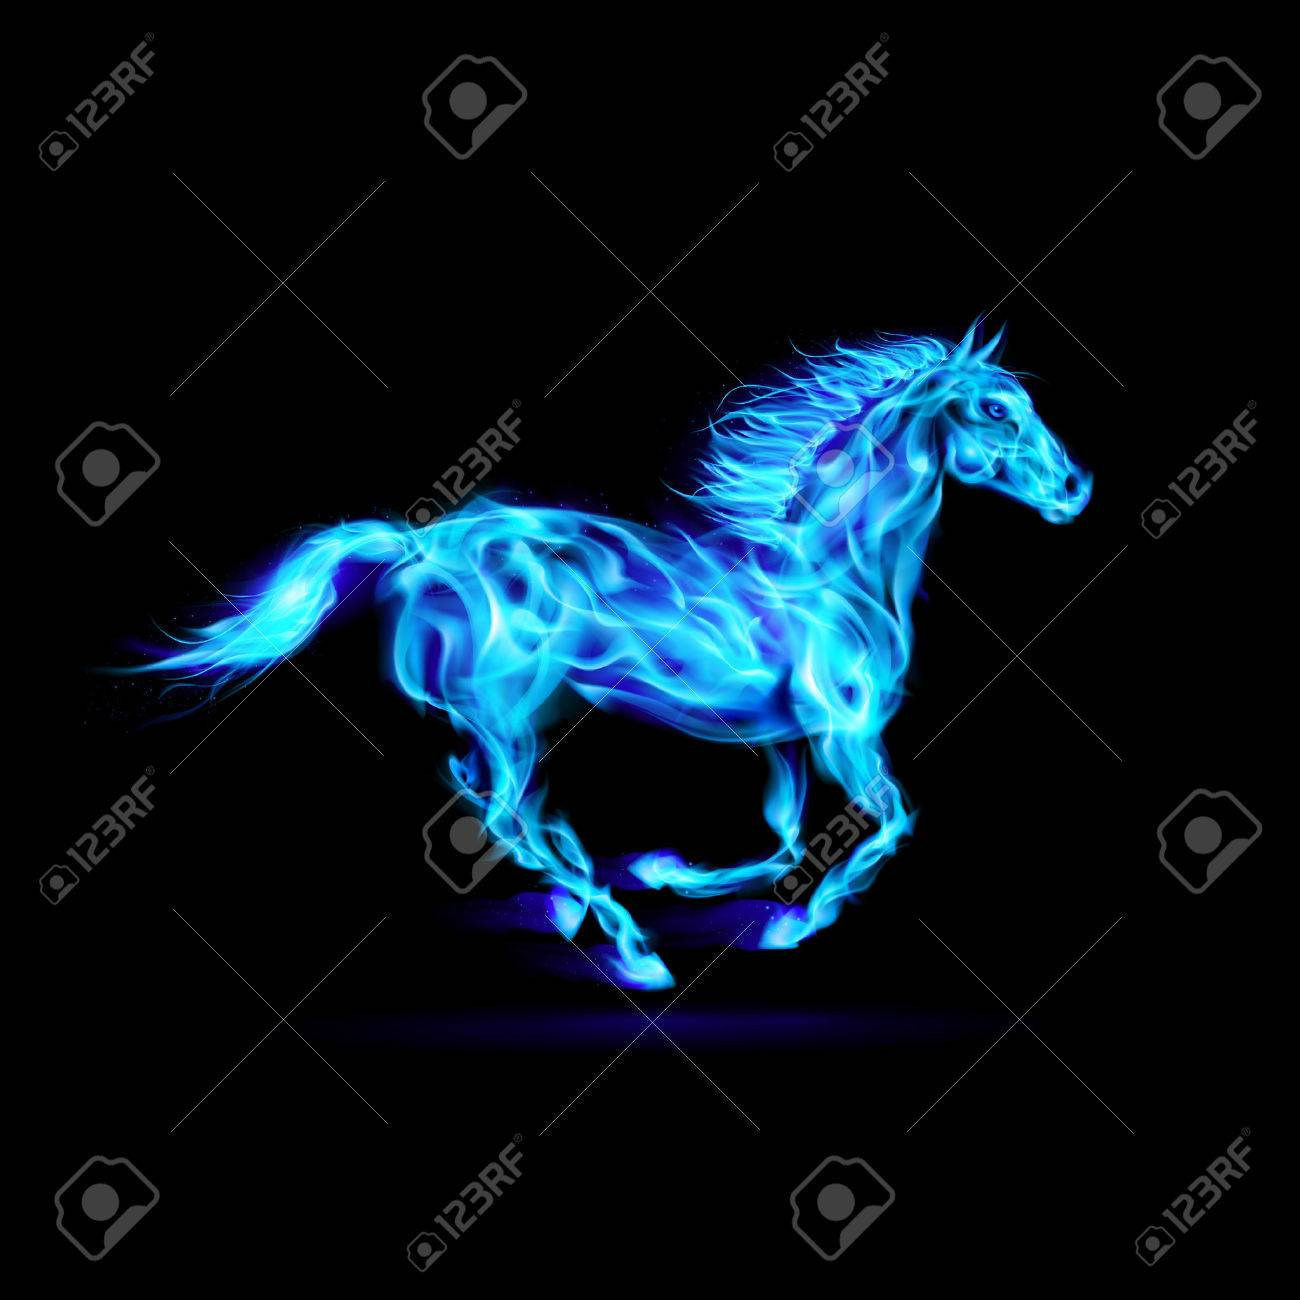 Illustration of blue fire horse on black background. Stock Vector - 22910083